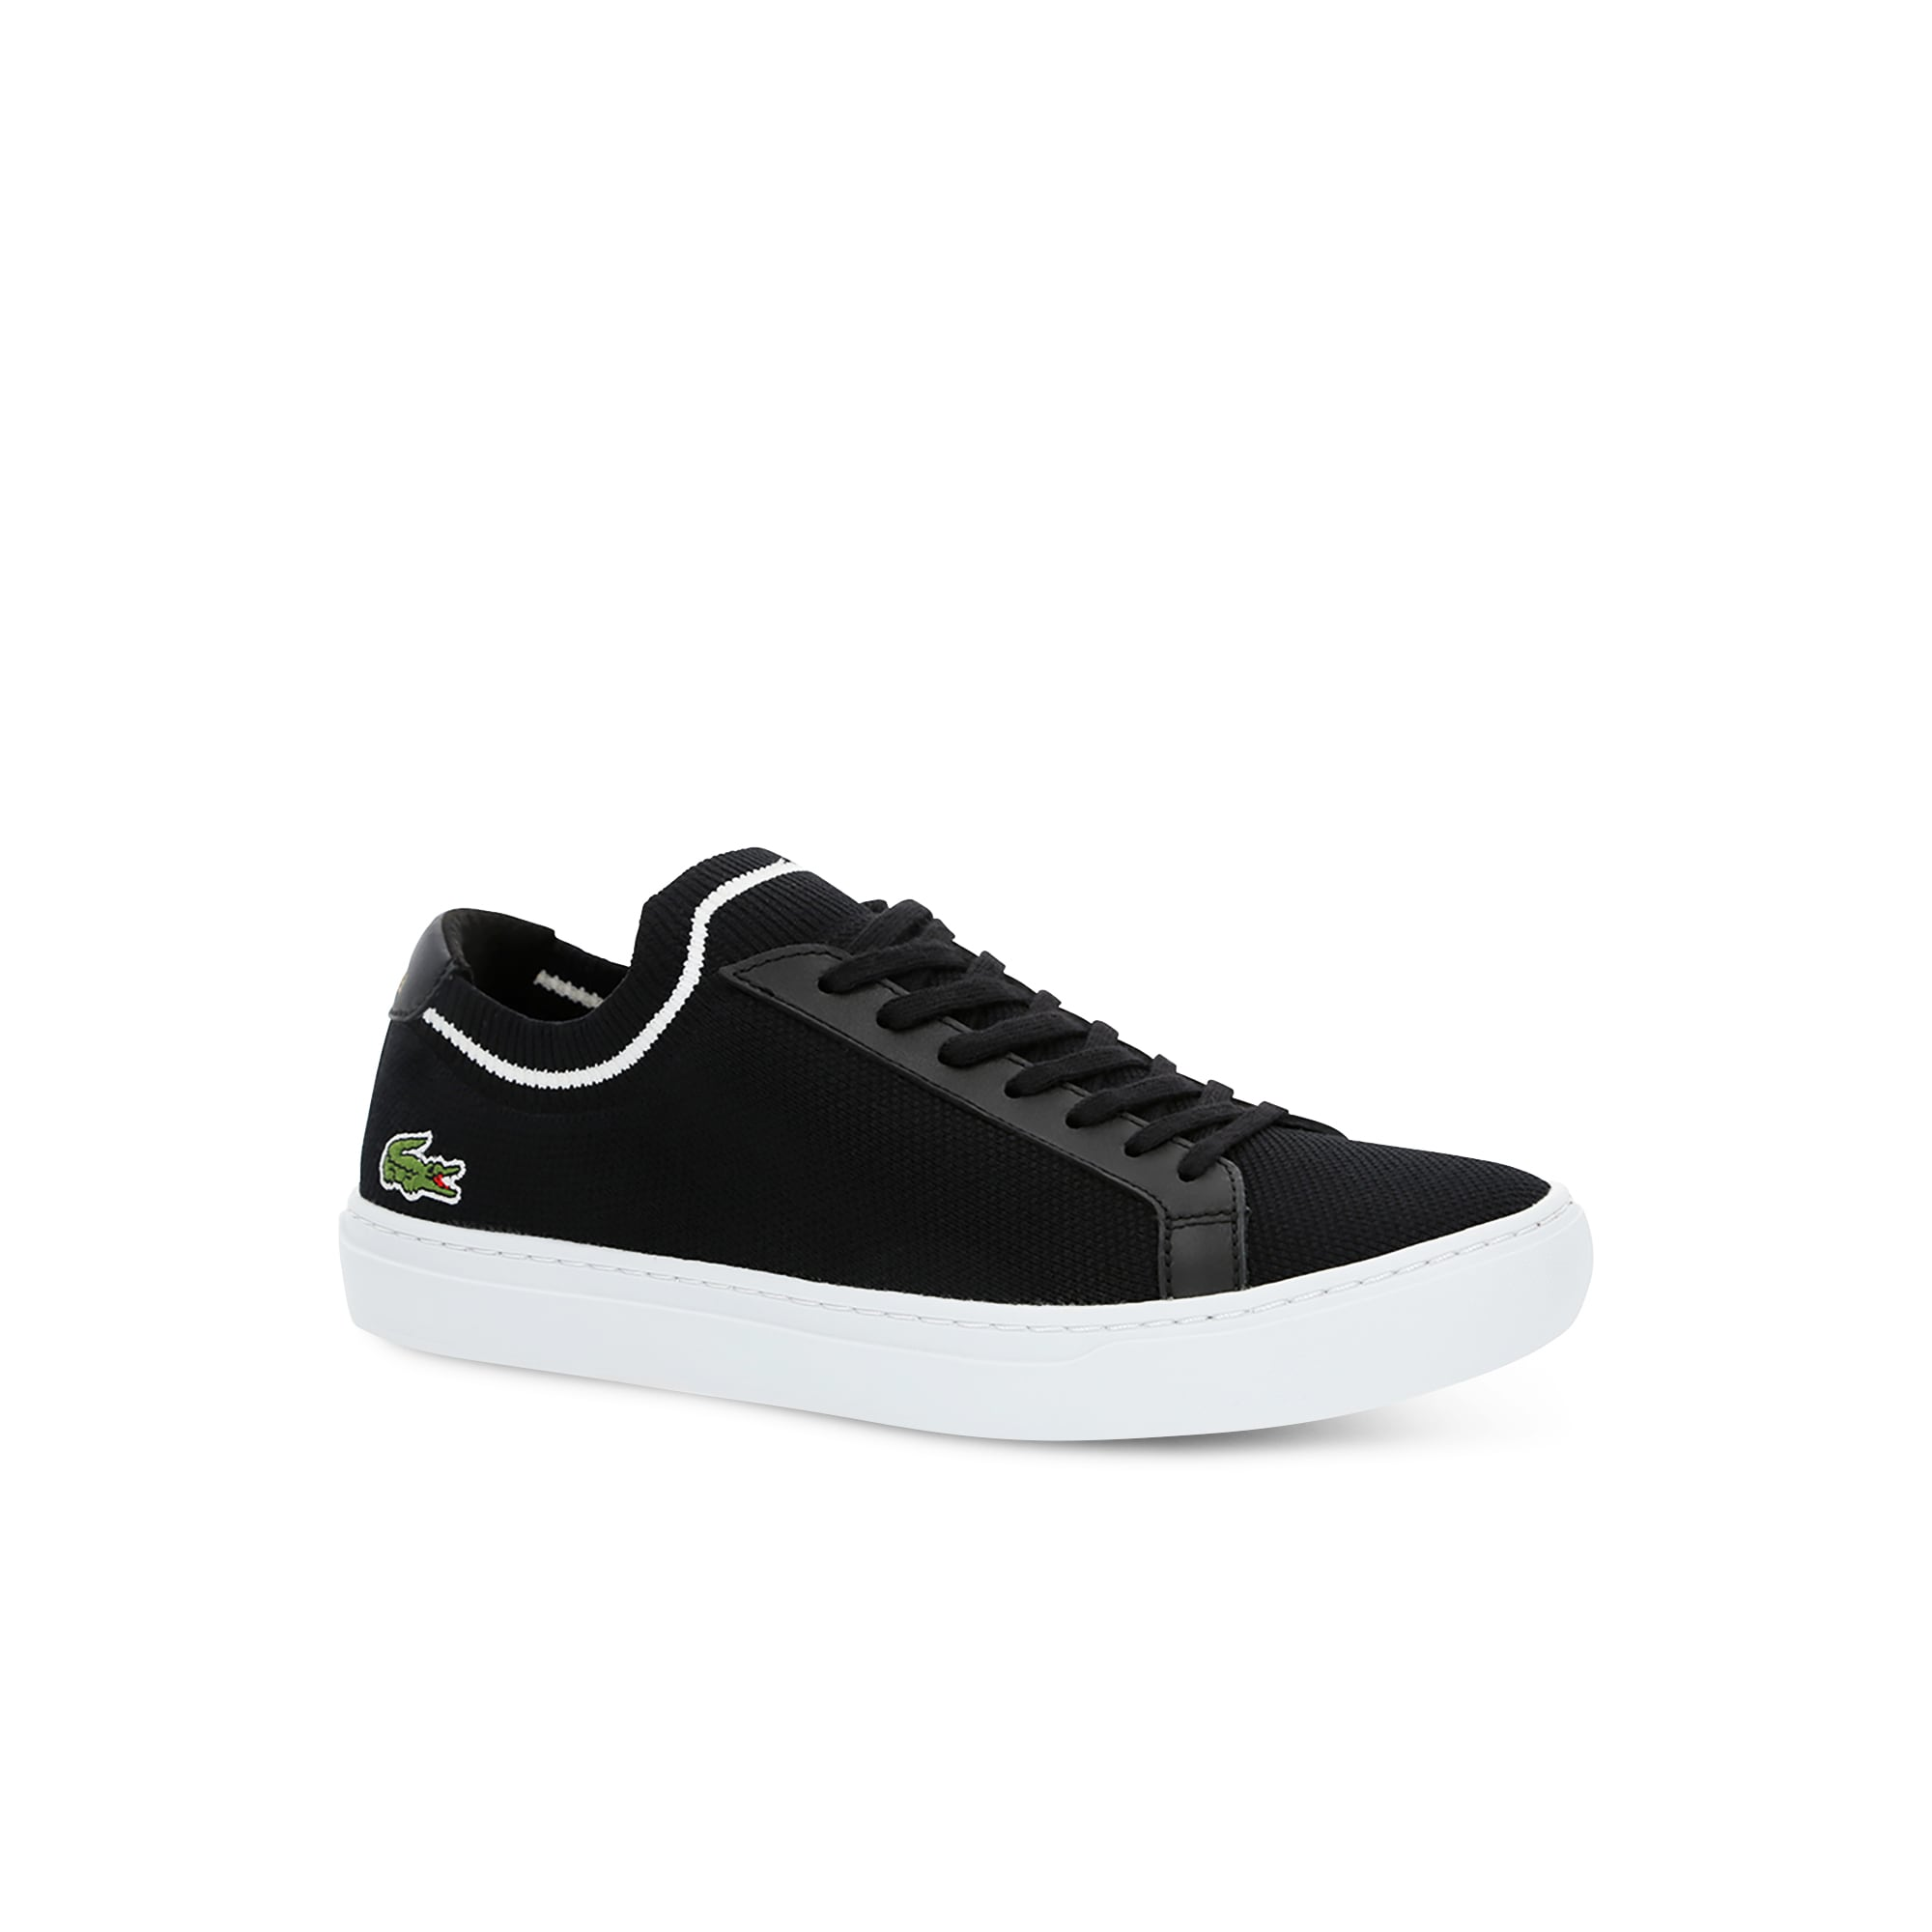 dfad7c0328e015 Lacoste shoes for men  Sneakers